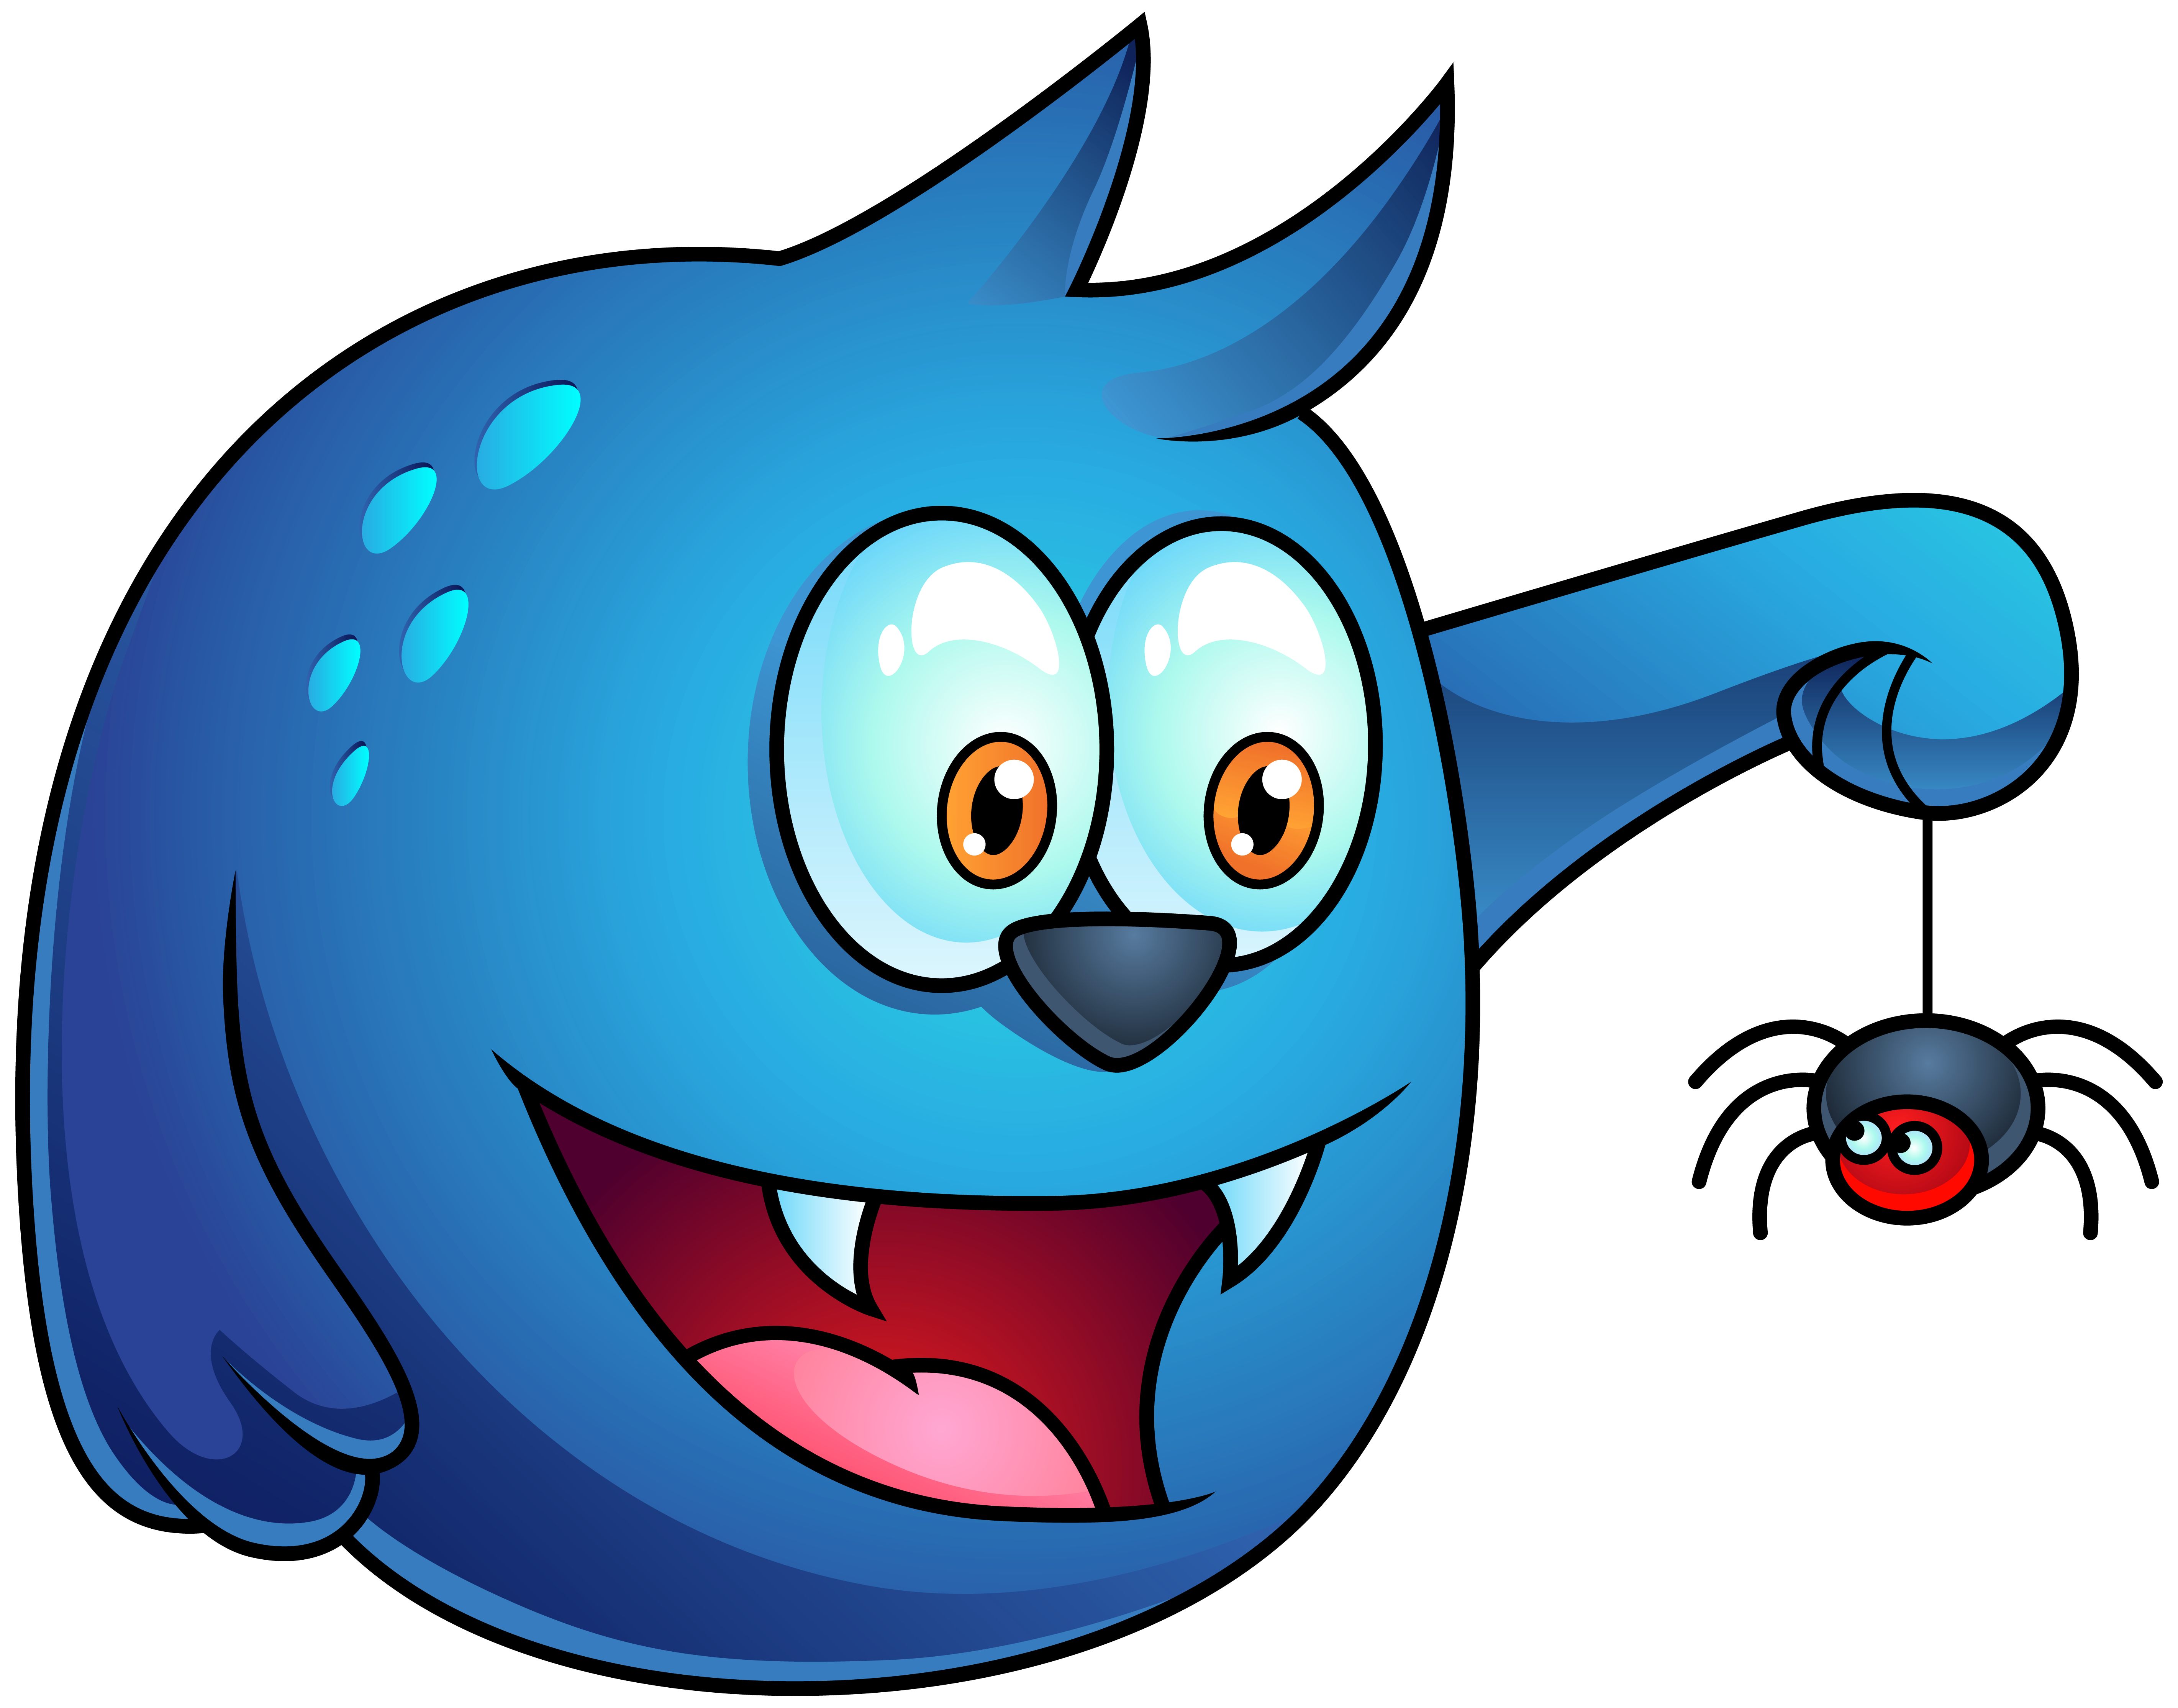 Blue halloween png image. Boarder clipart monster